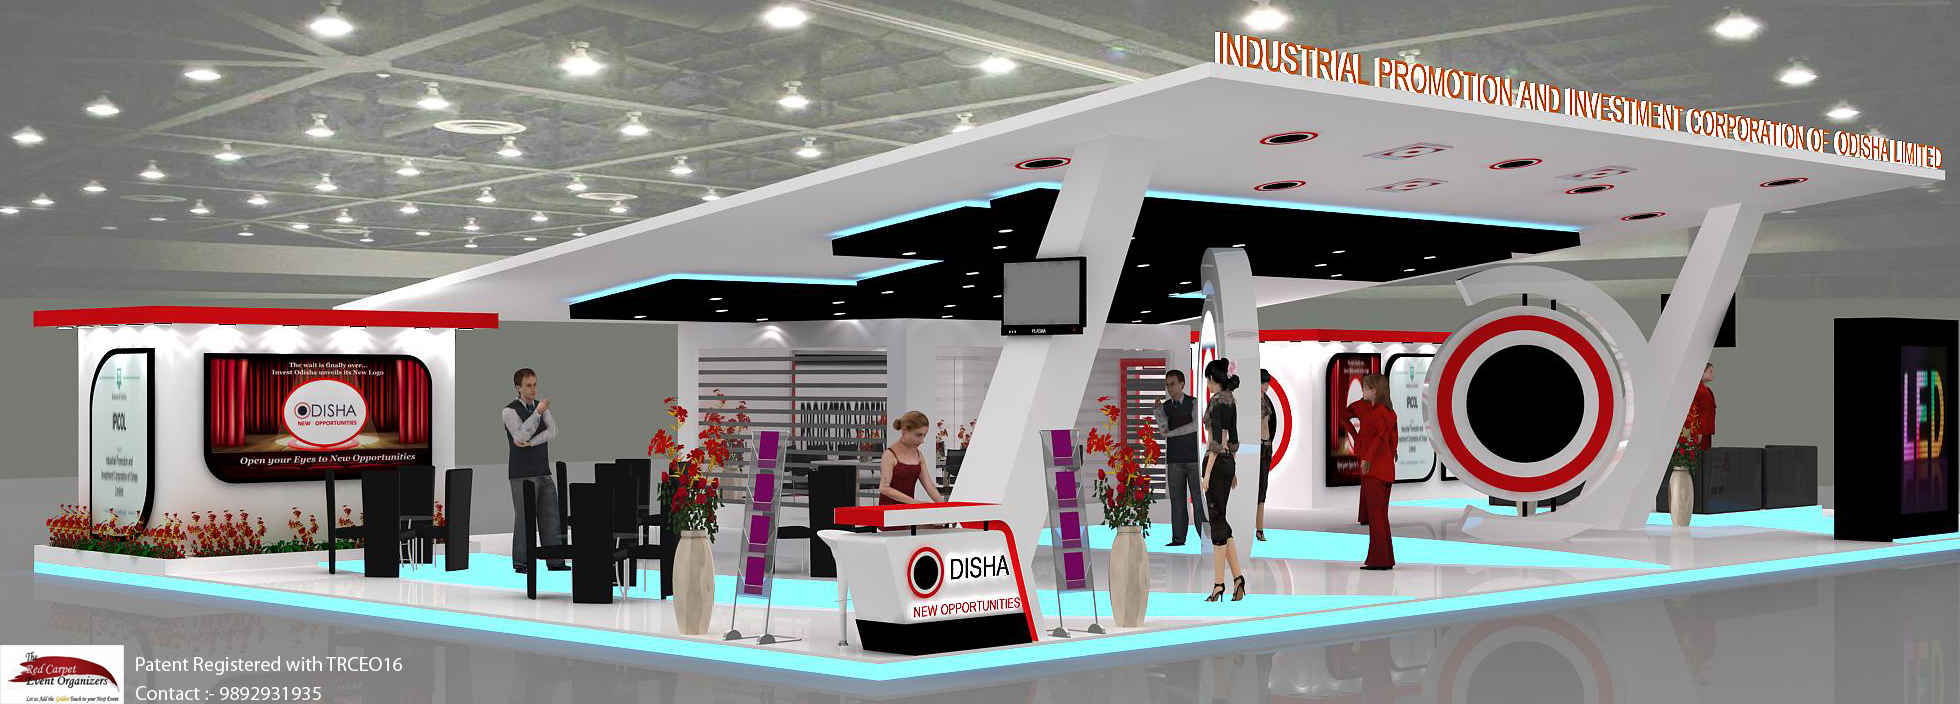 Exhibition Booth . 9892931935